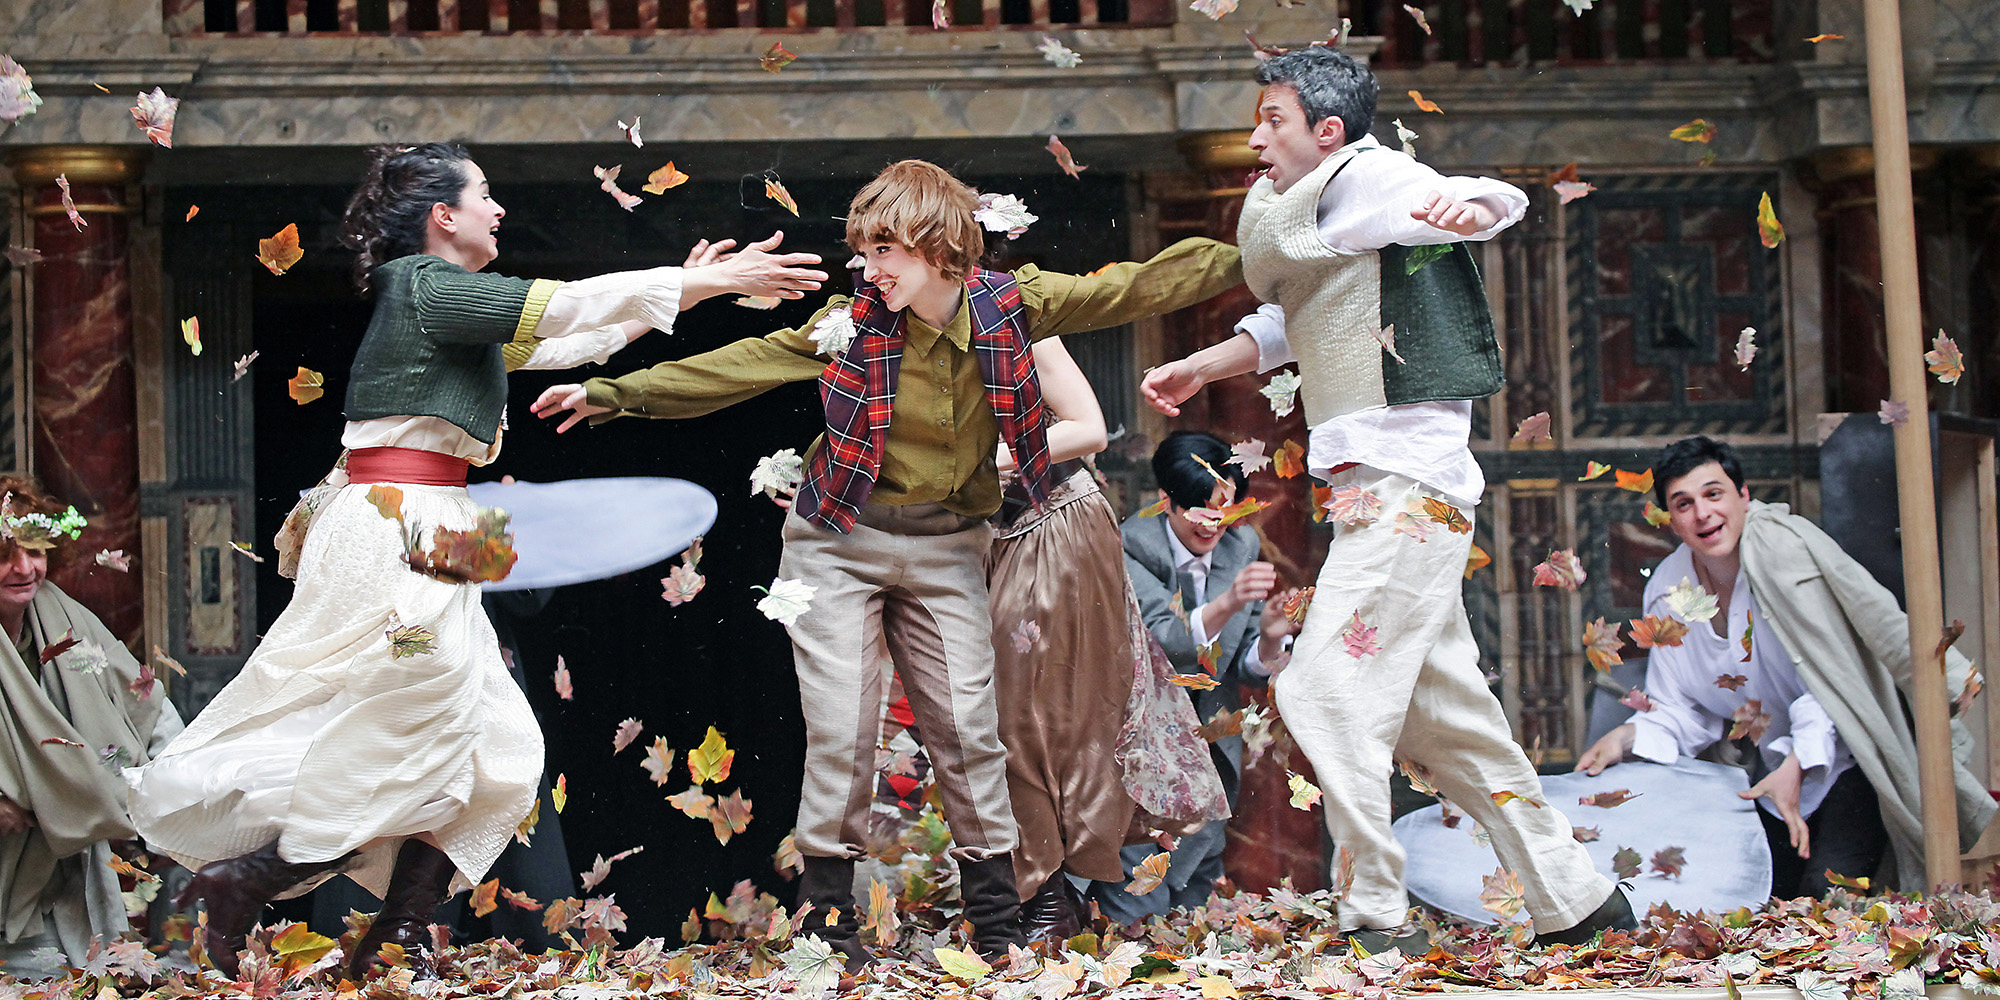 Actors on the stage that look as if they were playing in leaves